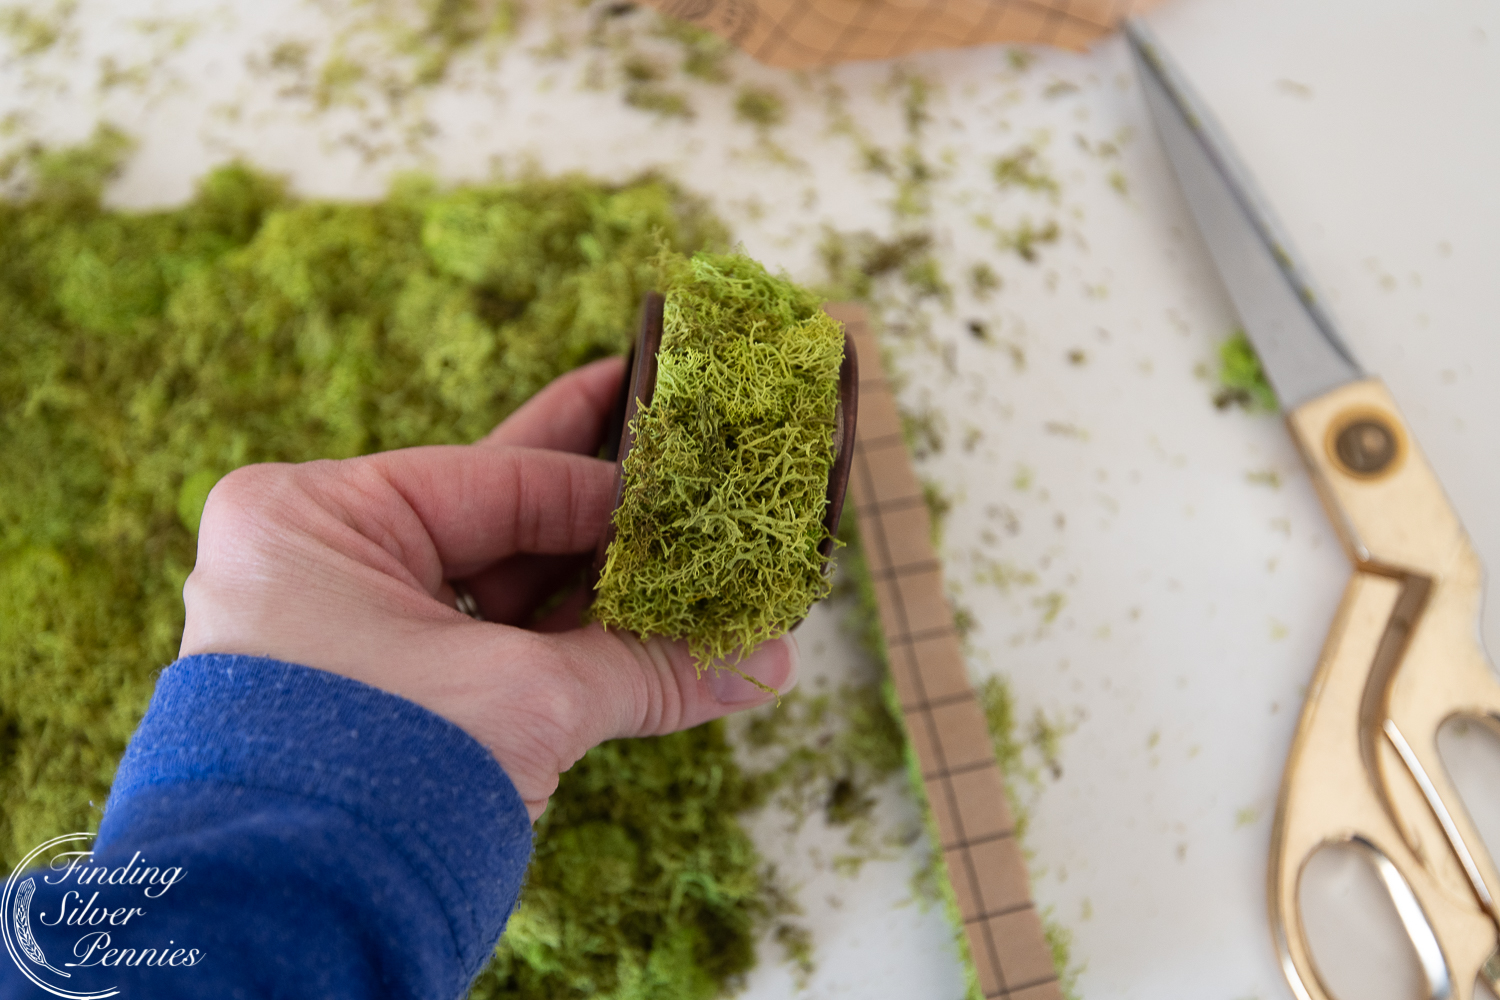 Quick and easy moss napkin rings #moss #crafts #DIYmosswreath #diymossnapkinrings #winterdecorating #hygge #cozyliving